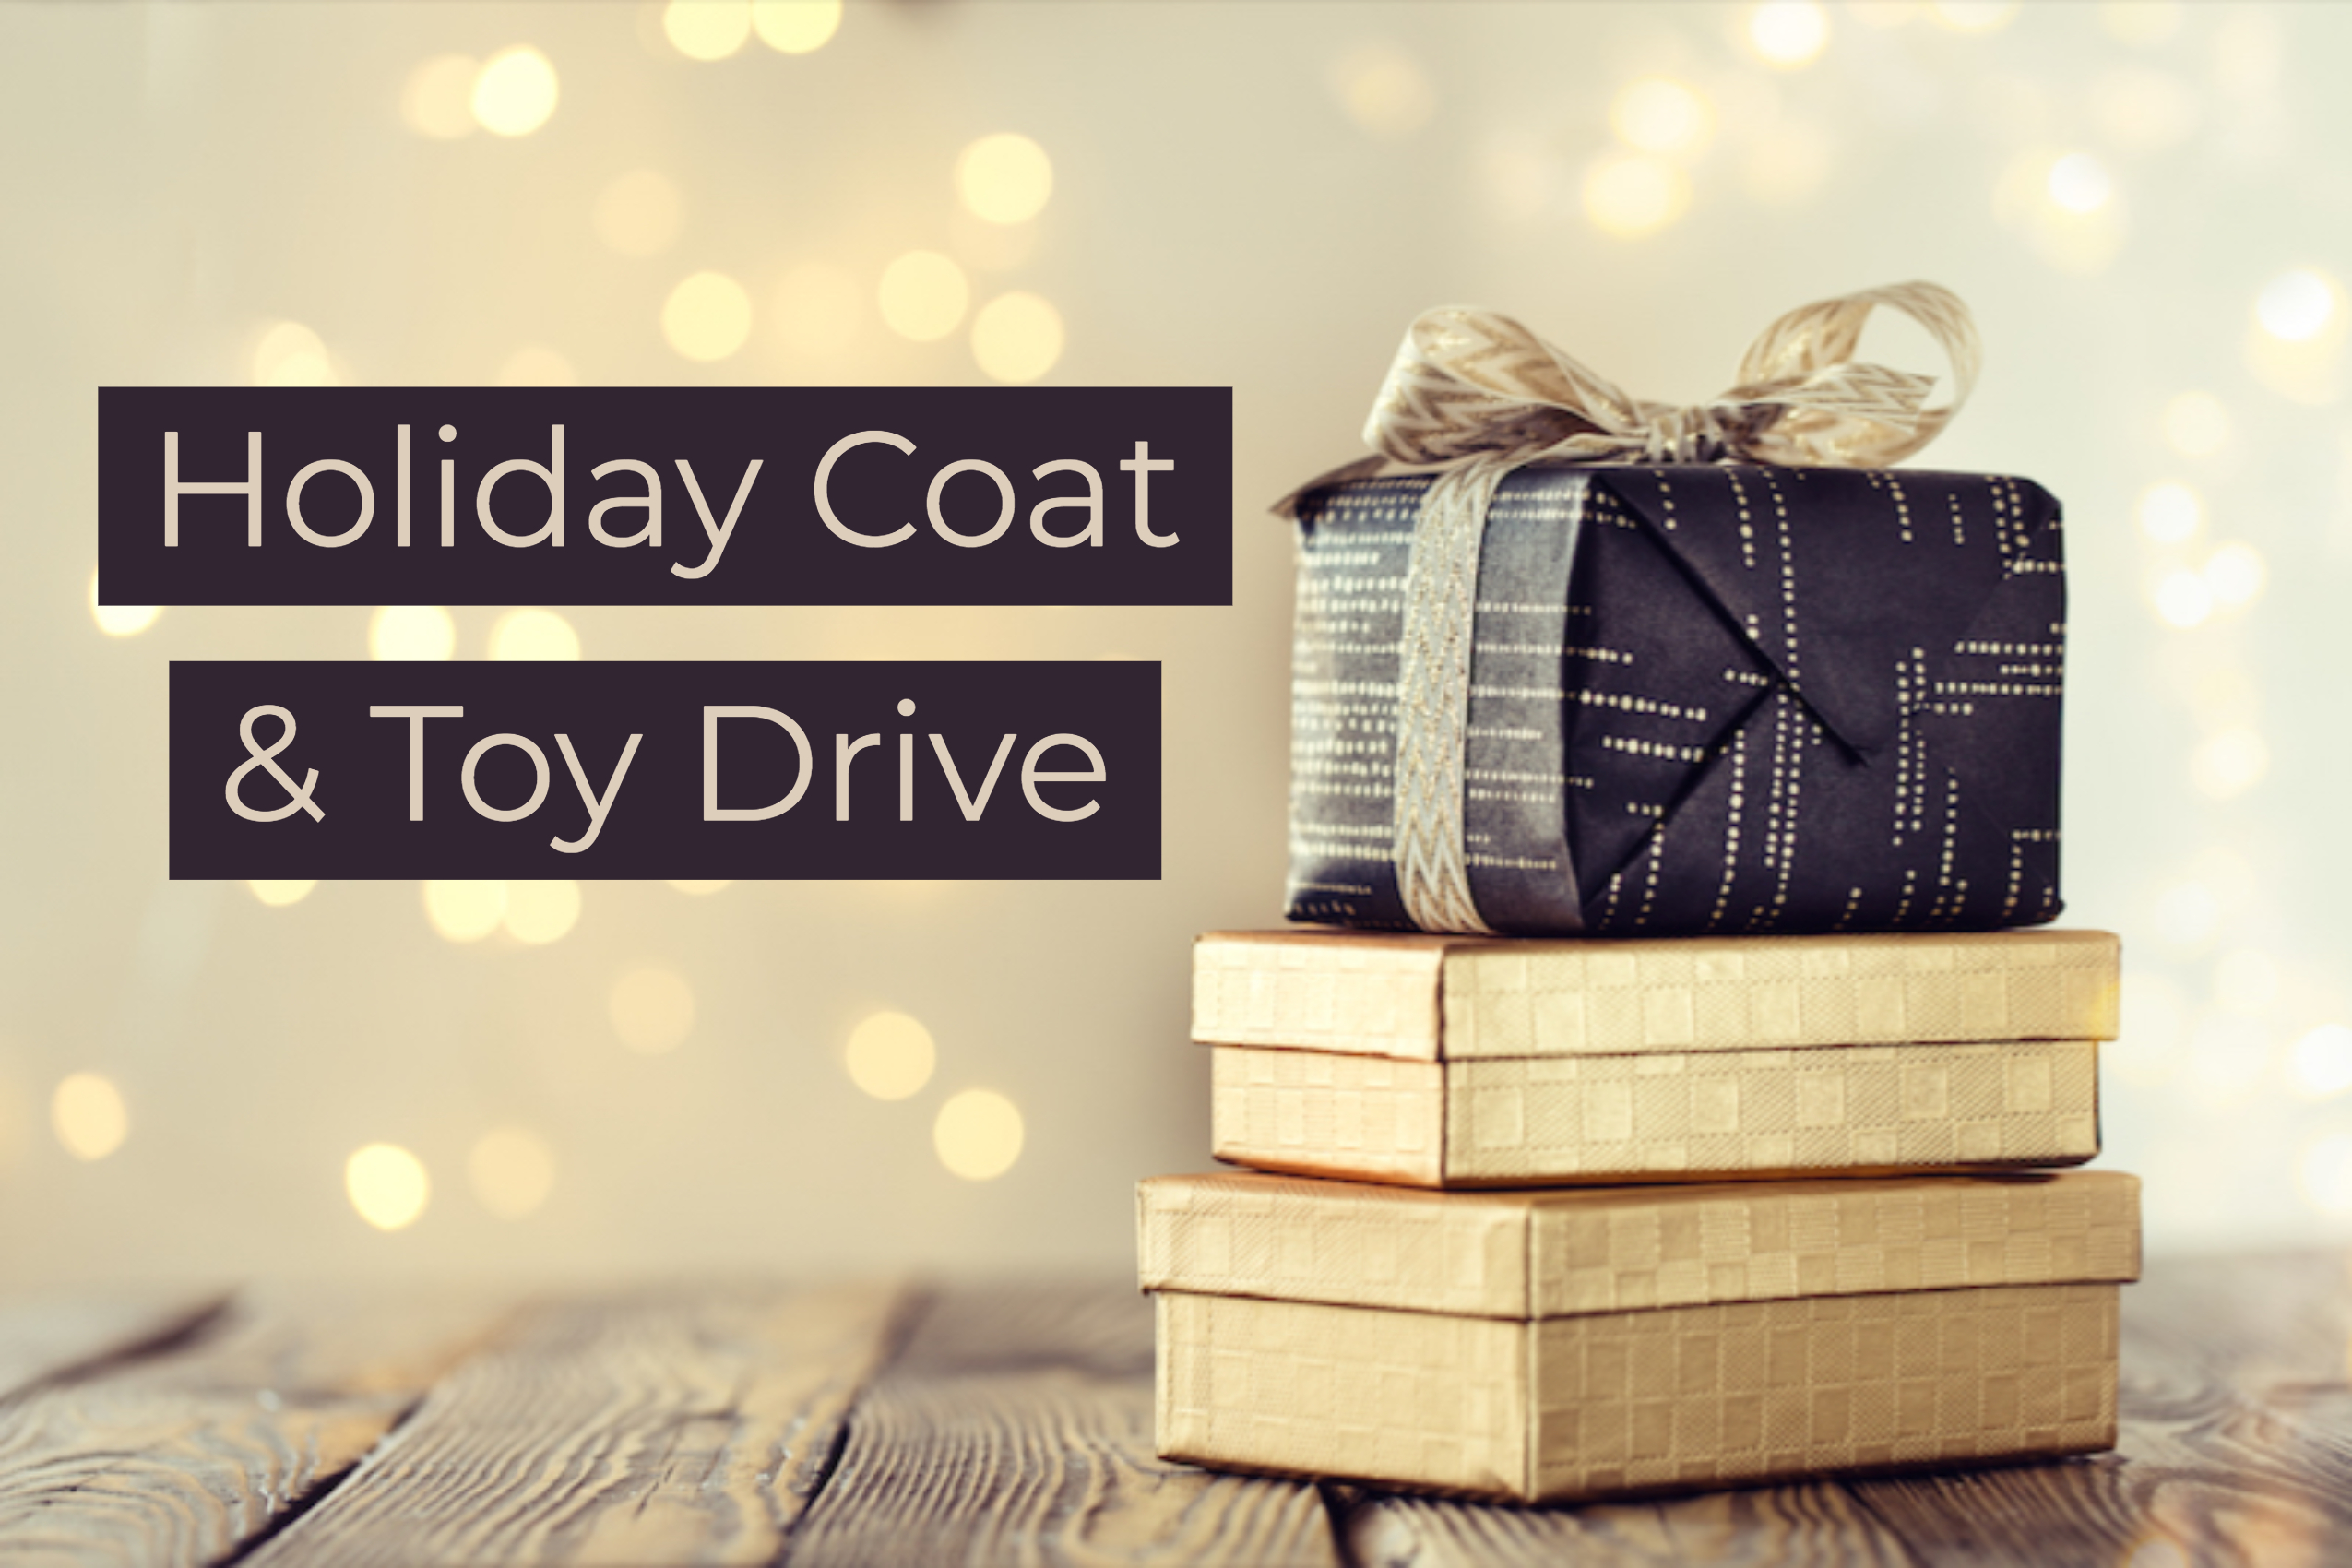 Holiday Coat & Toy Drive